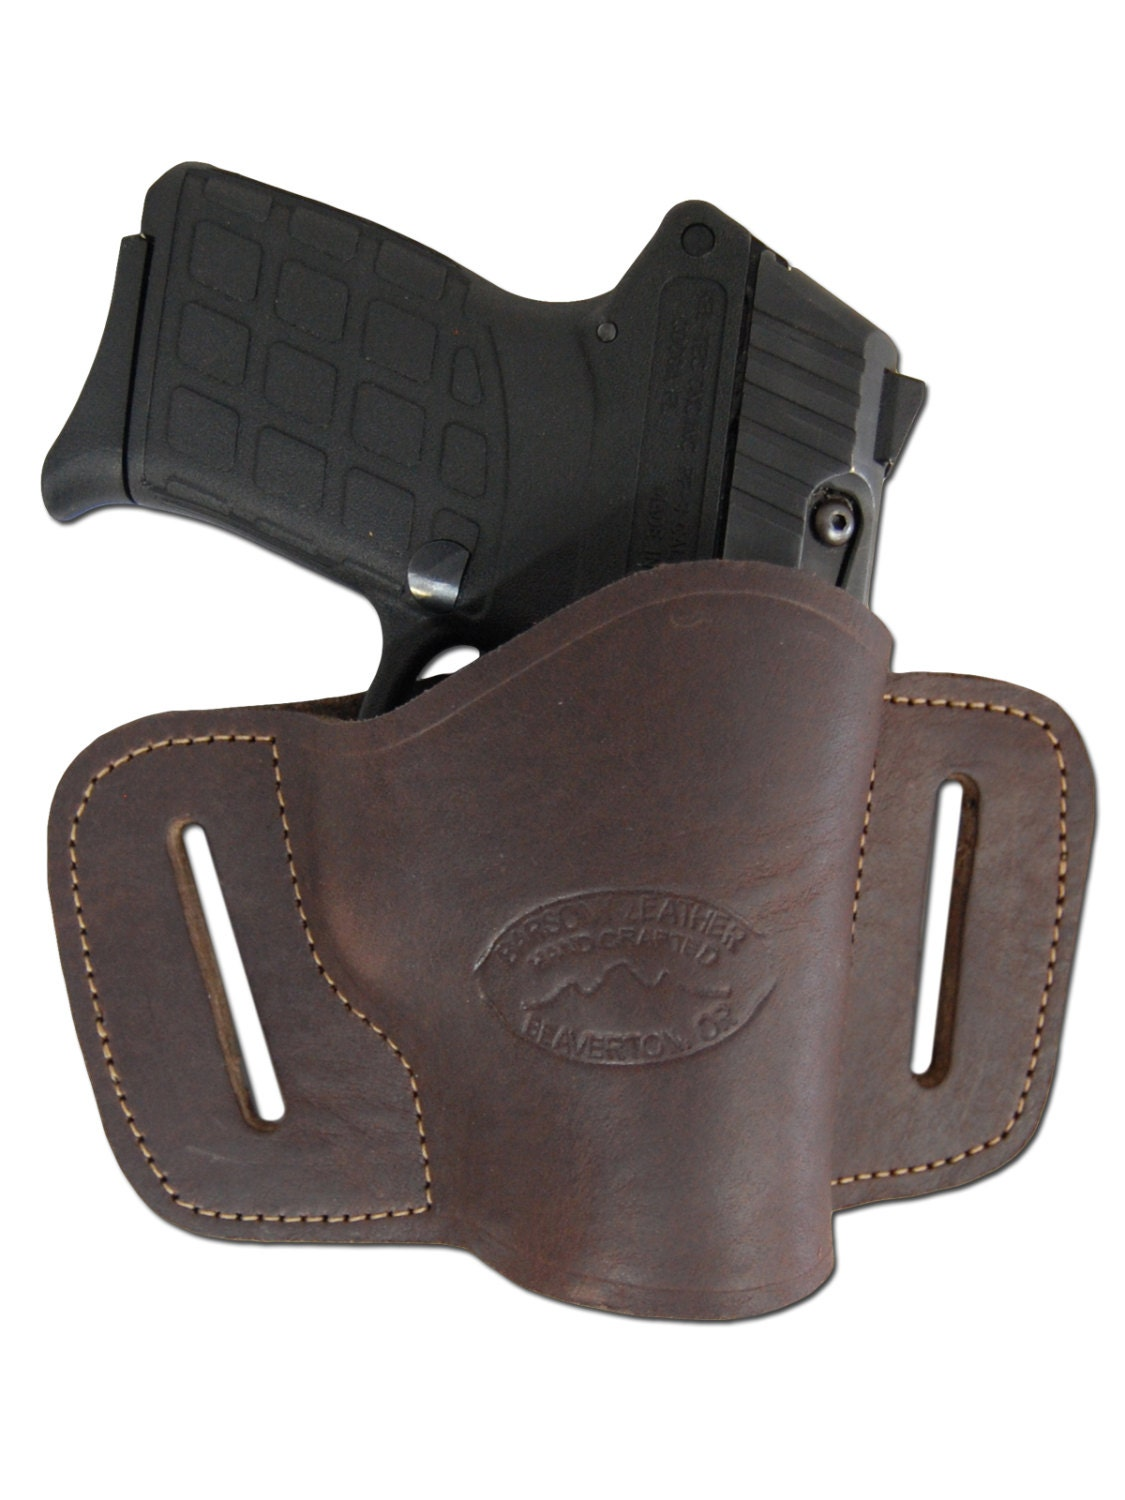 new brown leather belt slide gun holster for small 380